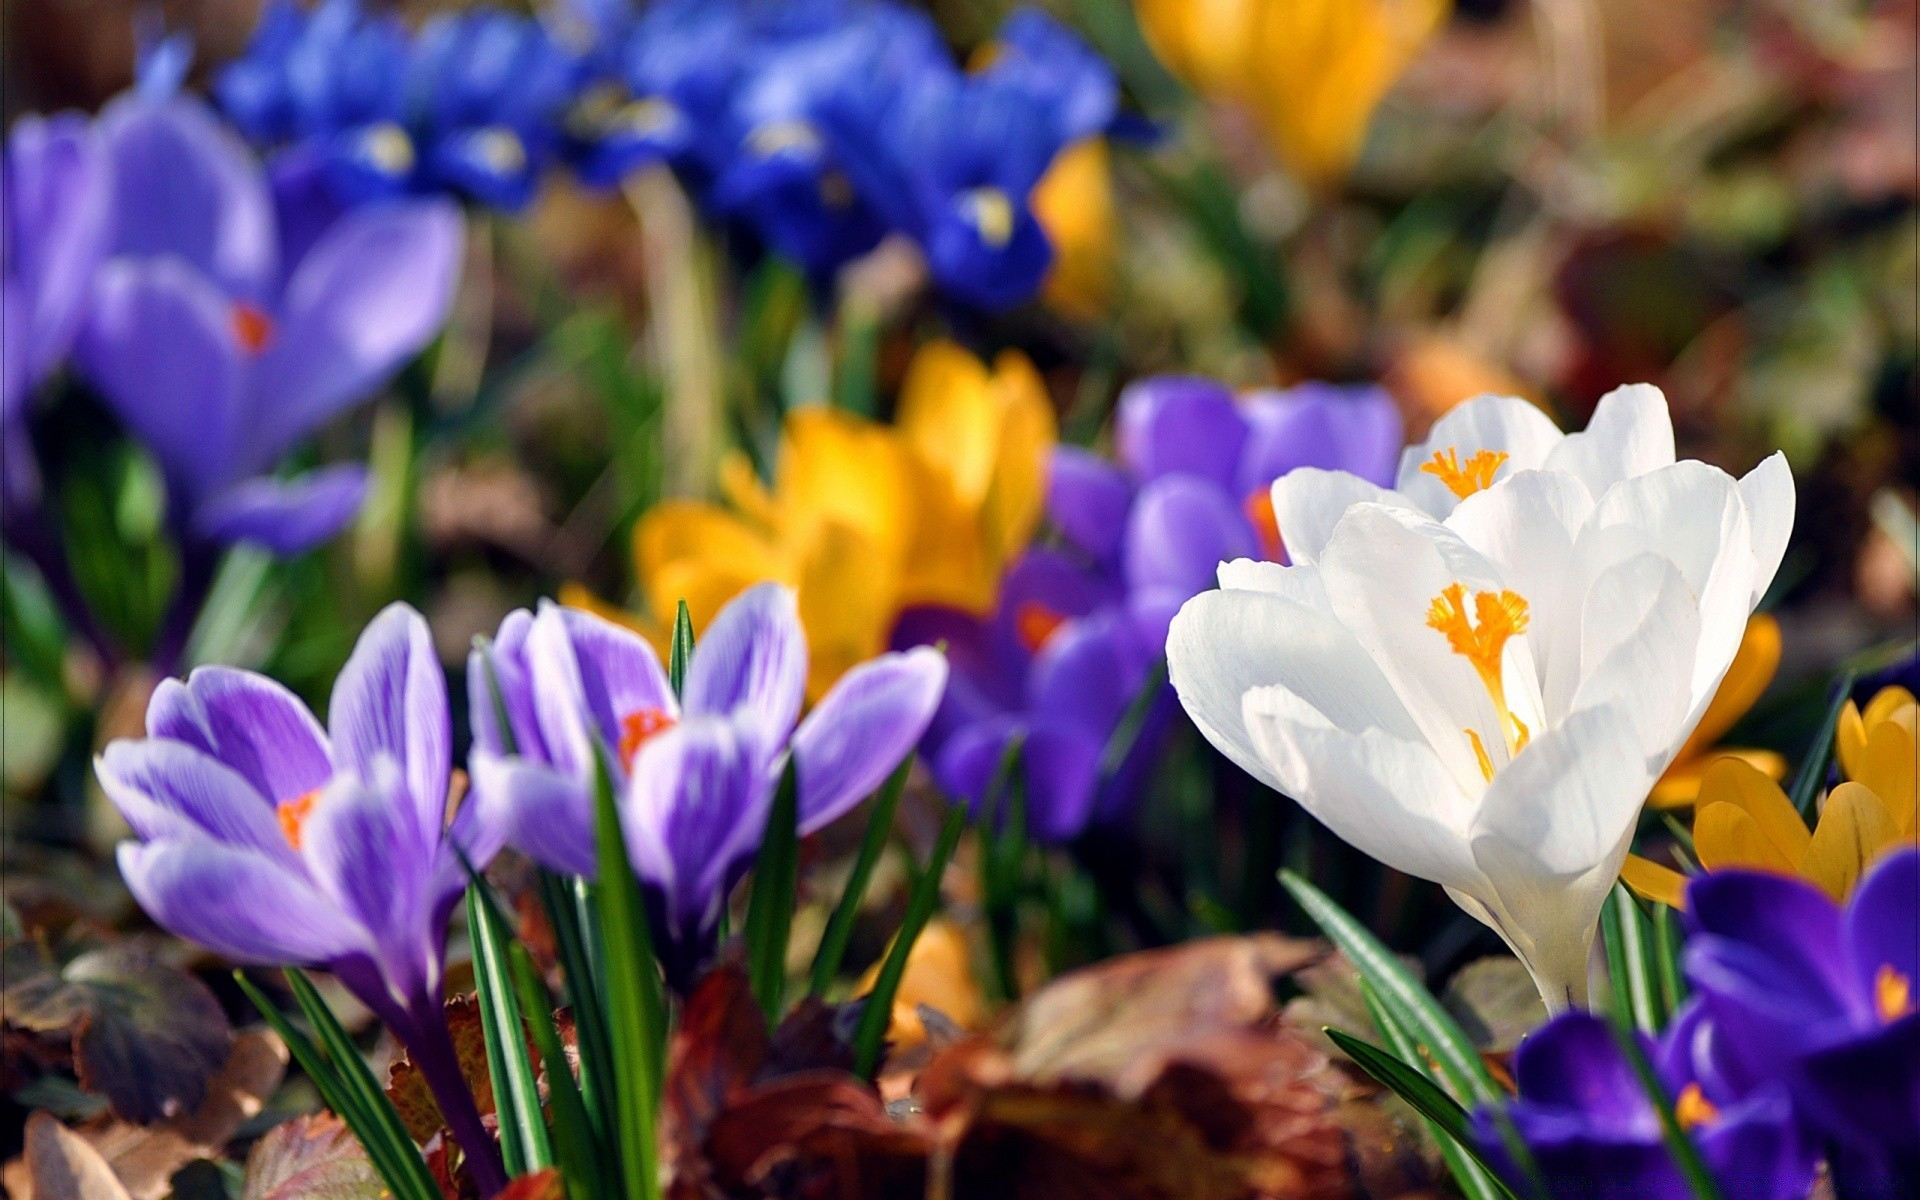 Crocus flowers spring android wallpapers for free spring flower nature flora garden easter leaf crocus floral blooming petal growth season color park summer mightylinksfo